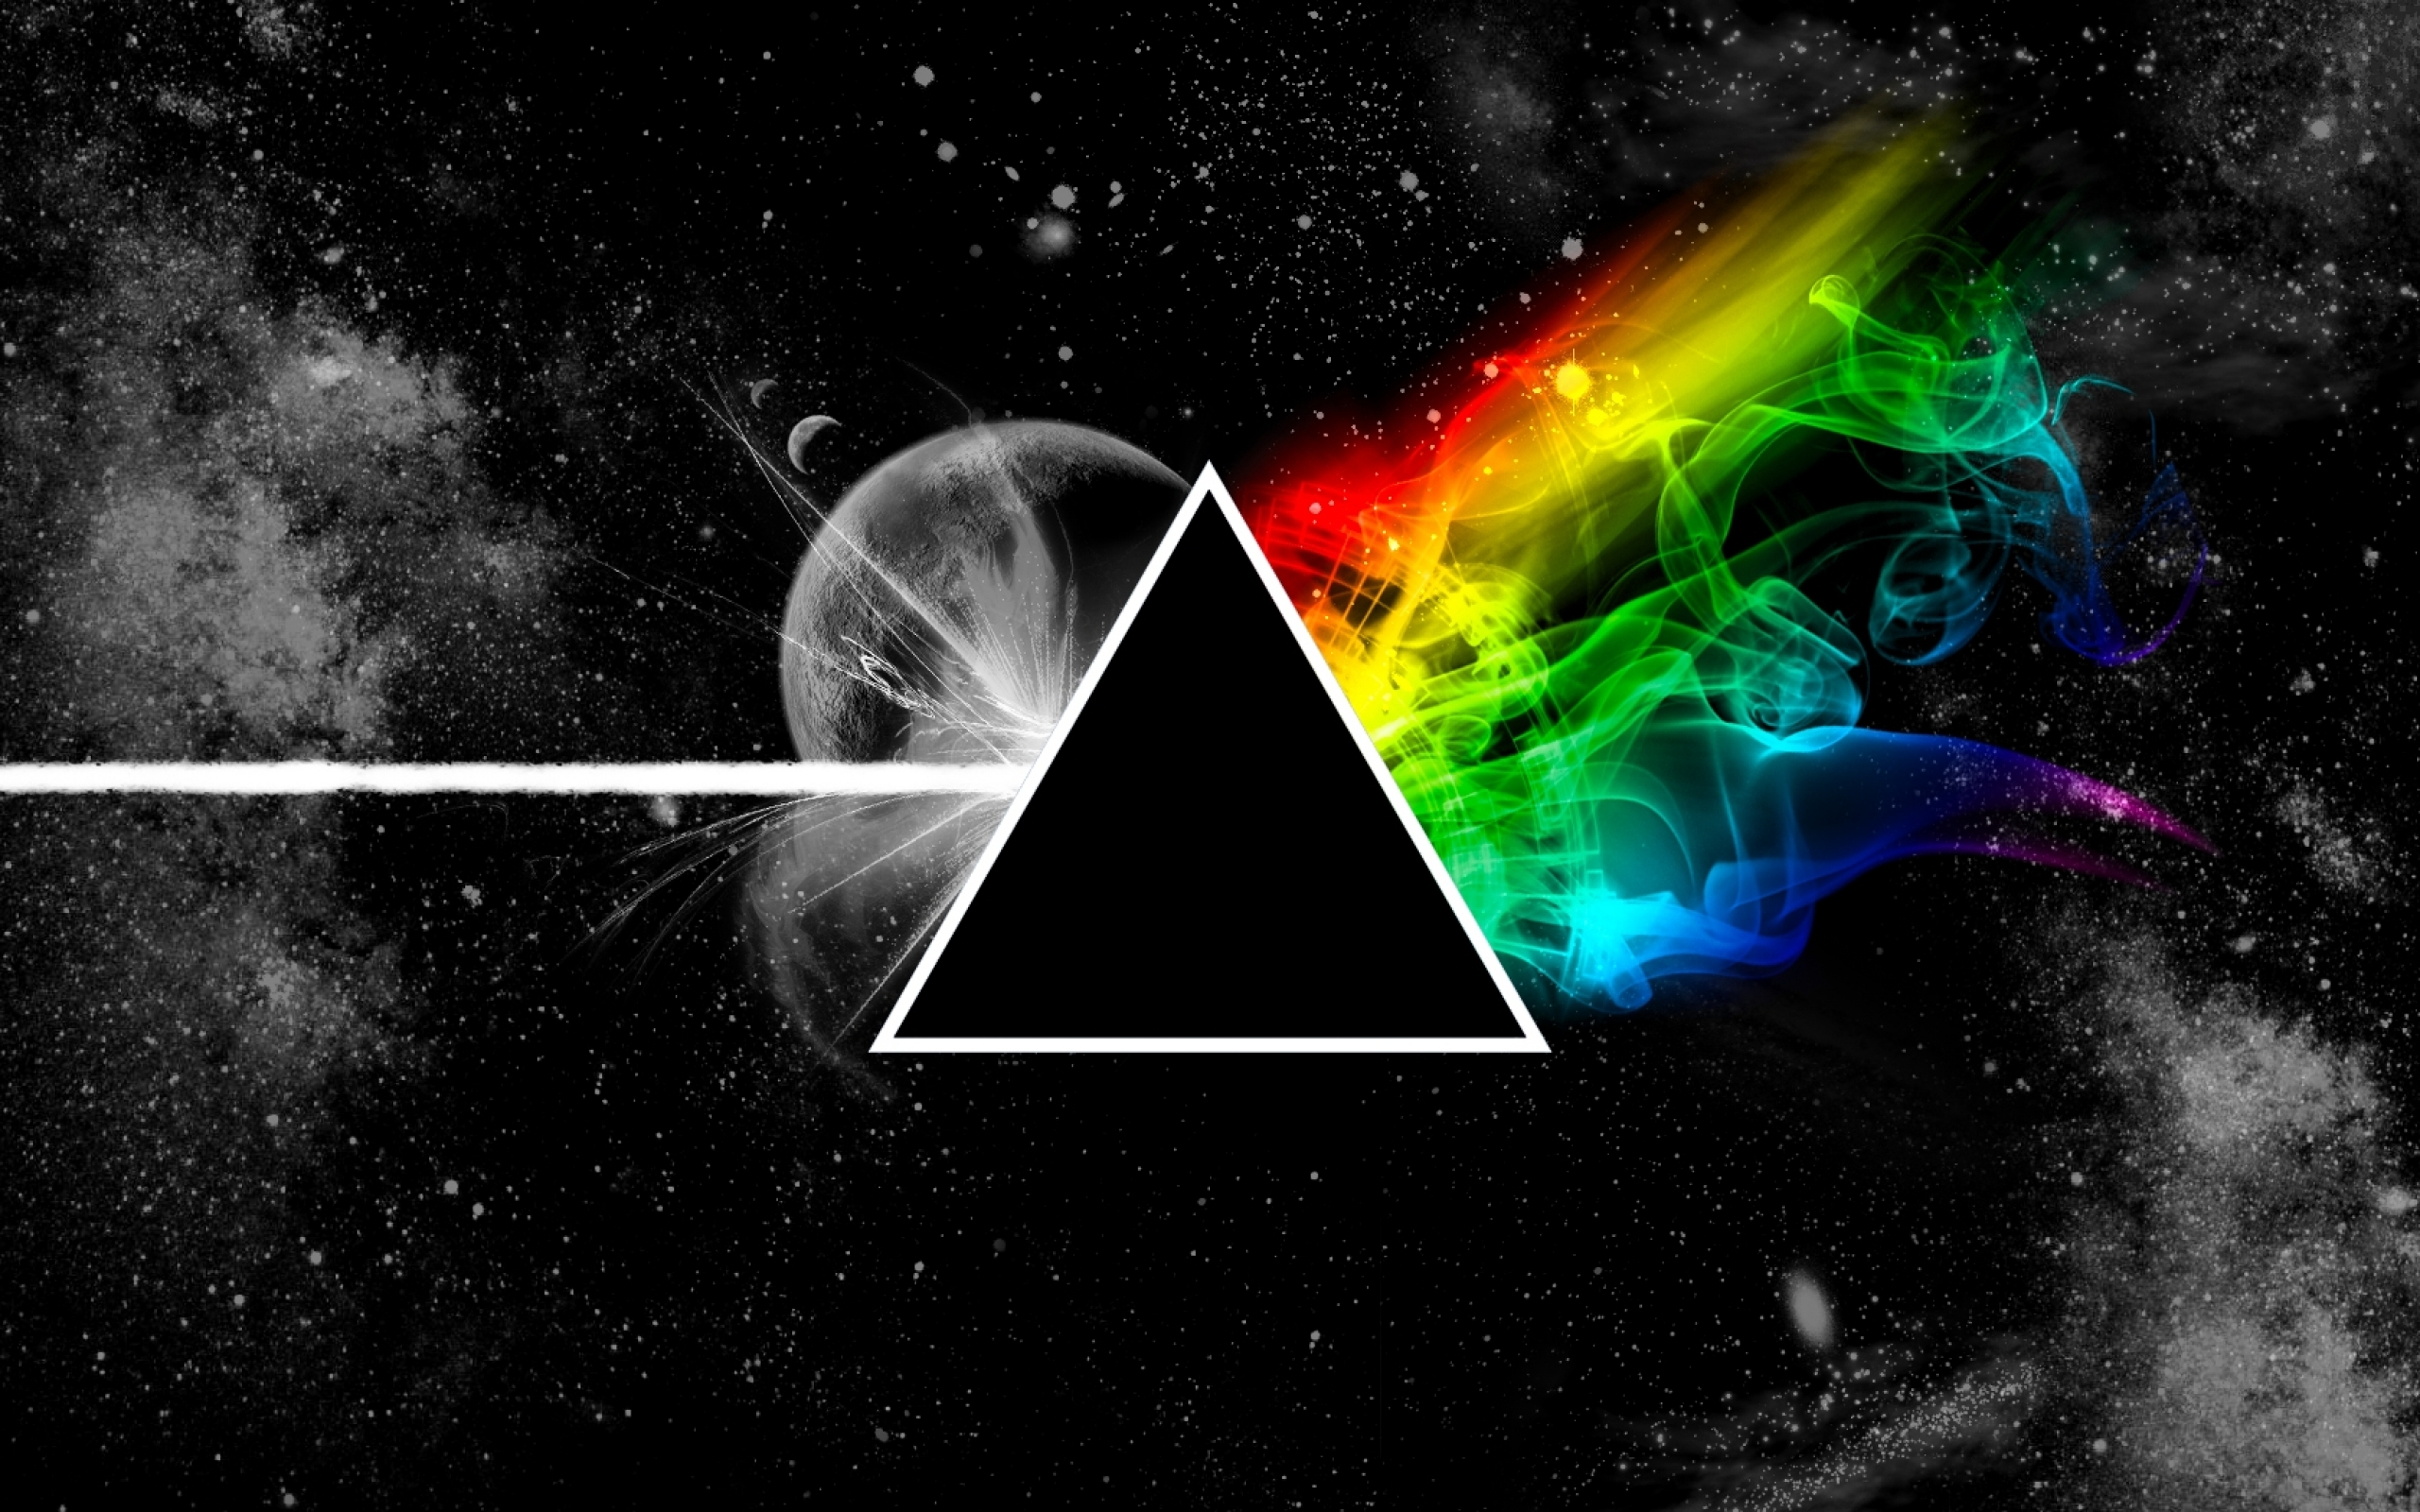 Abstract Nook Free Desktop Wallpaper Pink Floyd Wallpaper